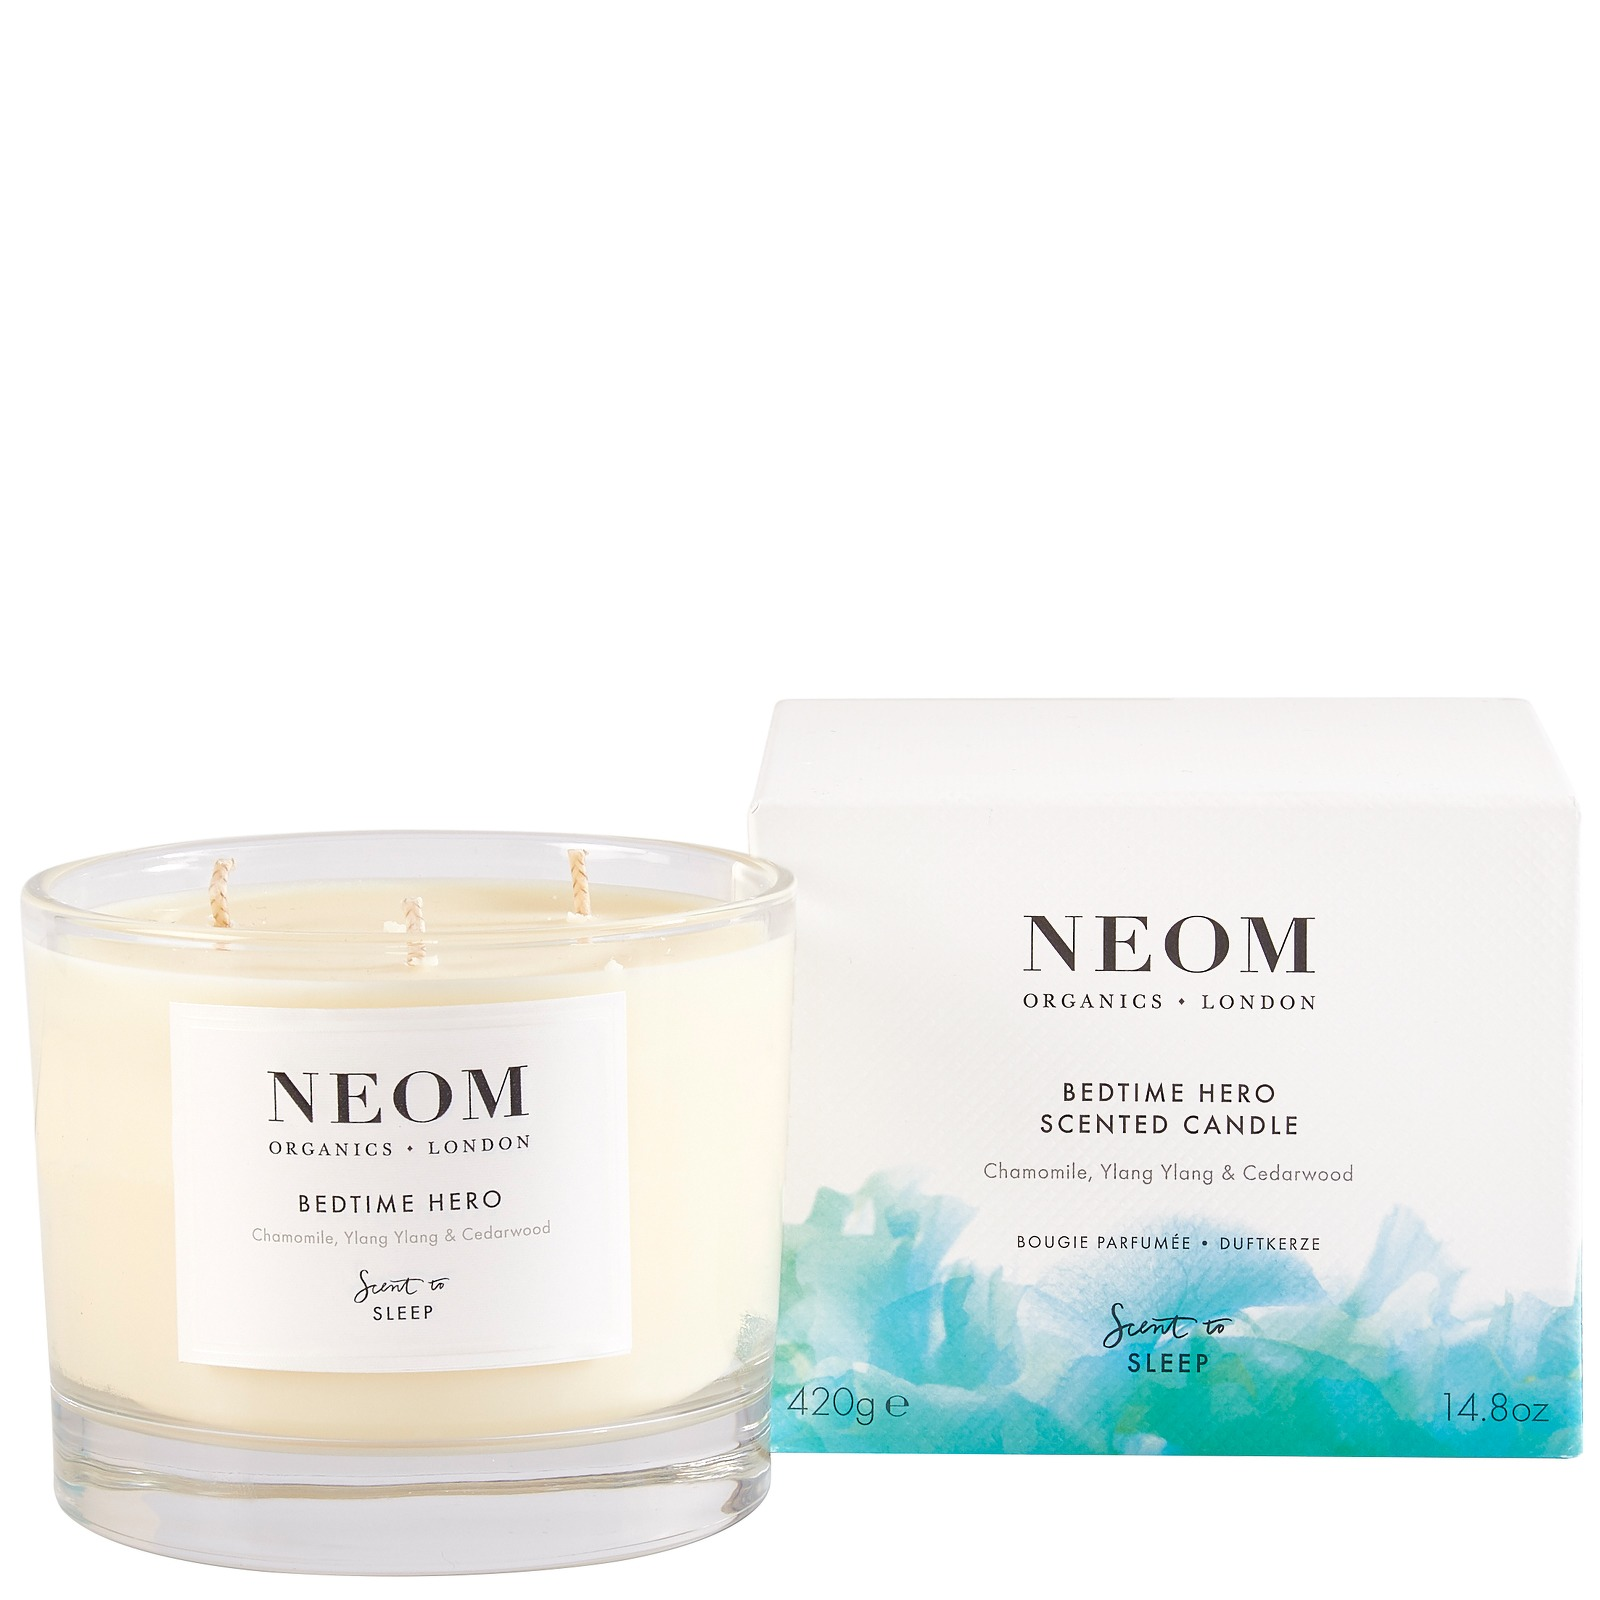 Neom Organics London Scent To Sleep Bedtime Hero 3 Wick Candle (3 Wick) 420g